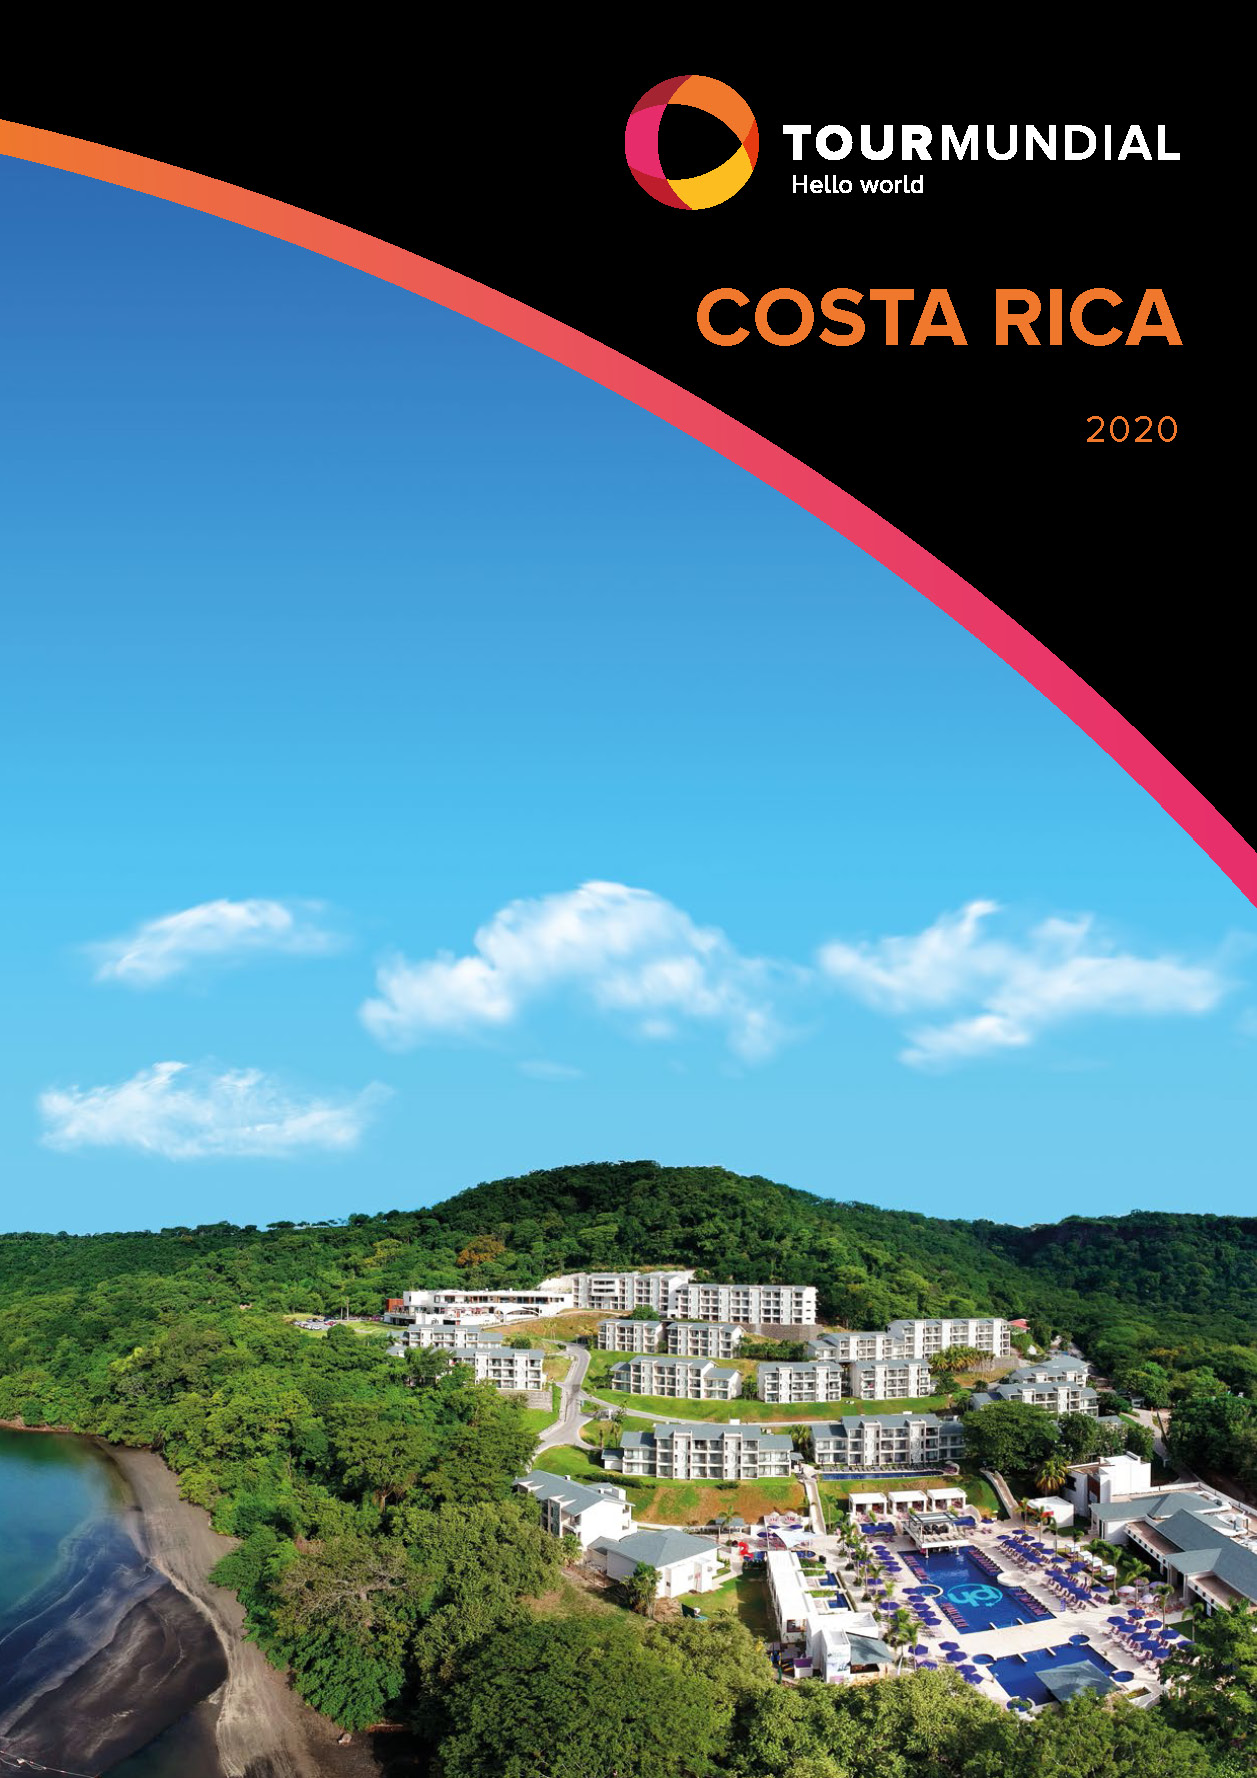 Catalogo Tourmundial Costa Rica 2020